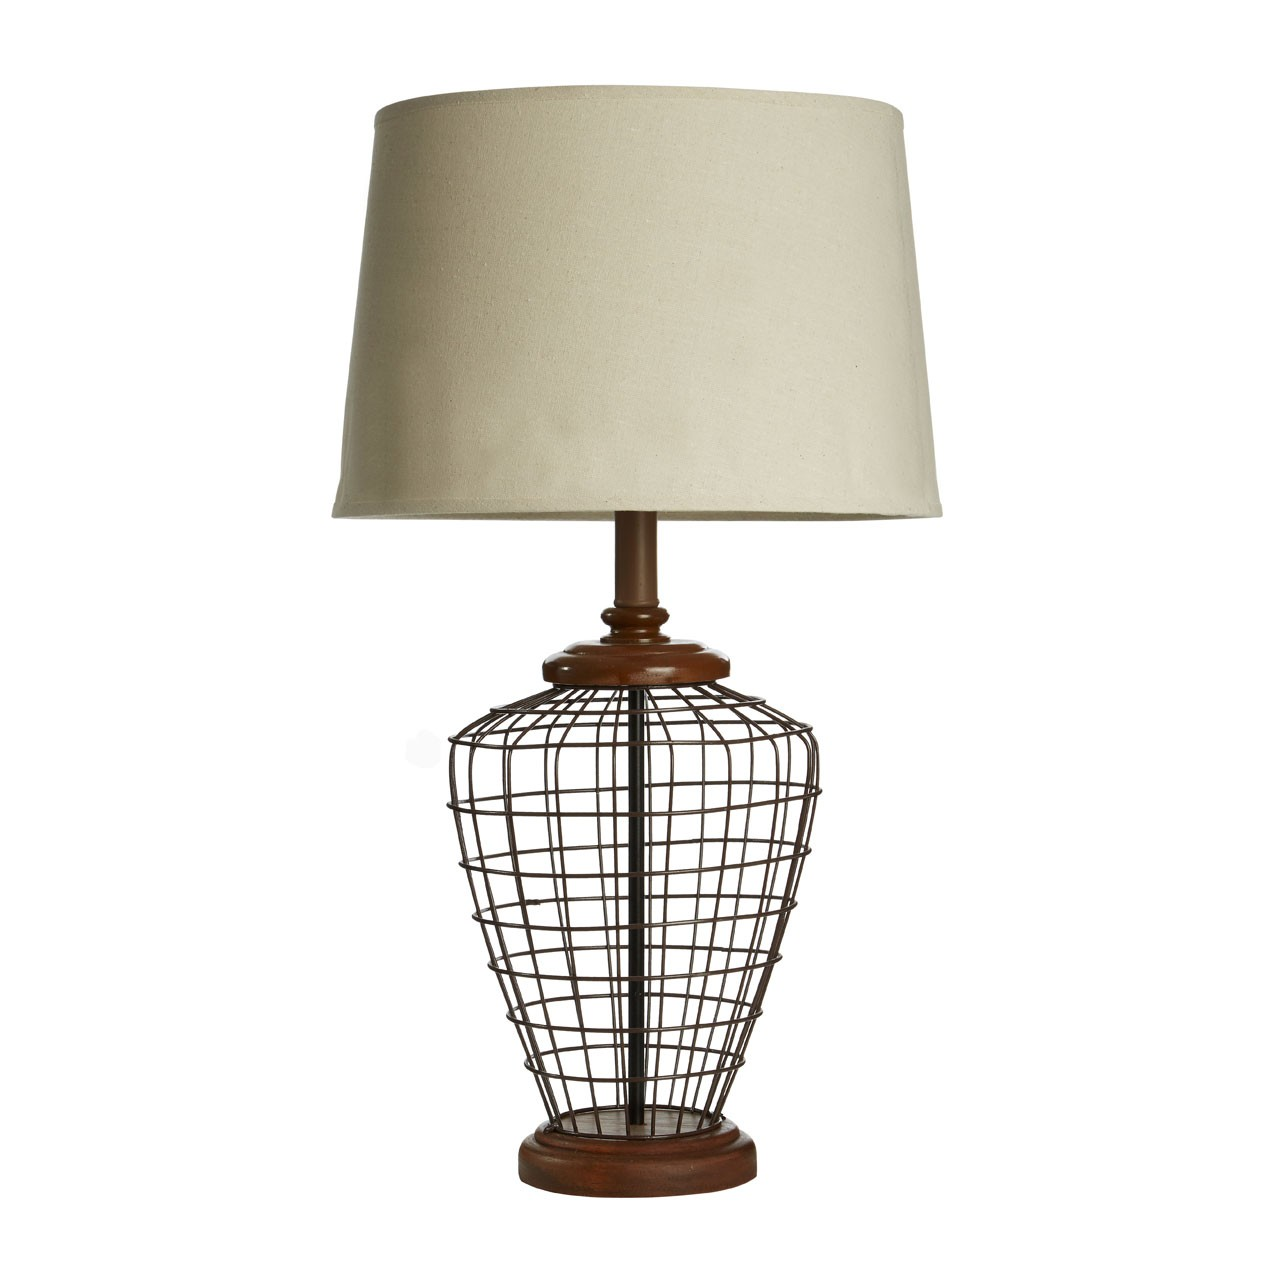 Prime Furnishing Maine Table Lamp, Metal/Wooden Base, Natural